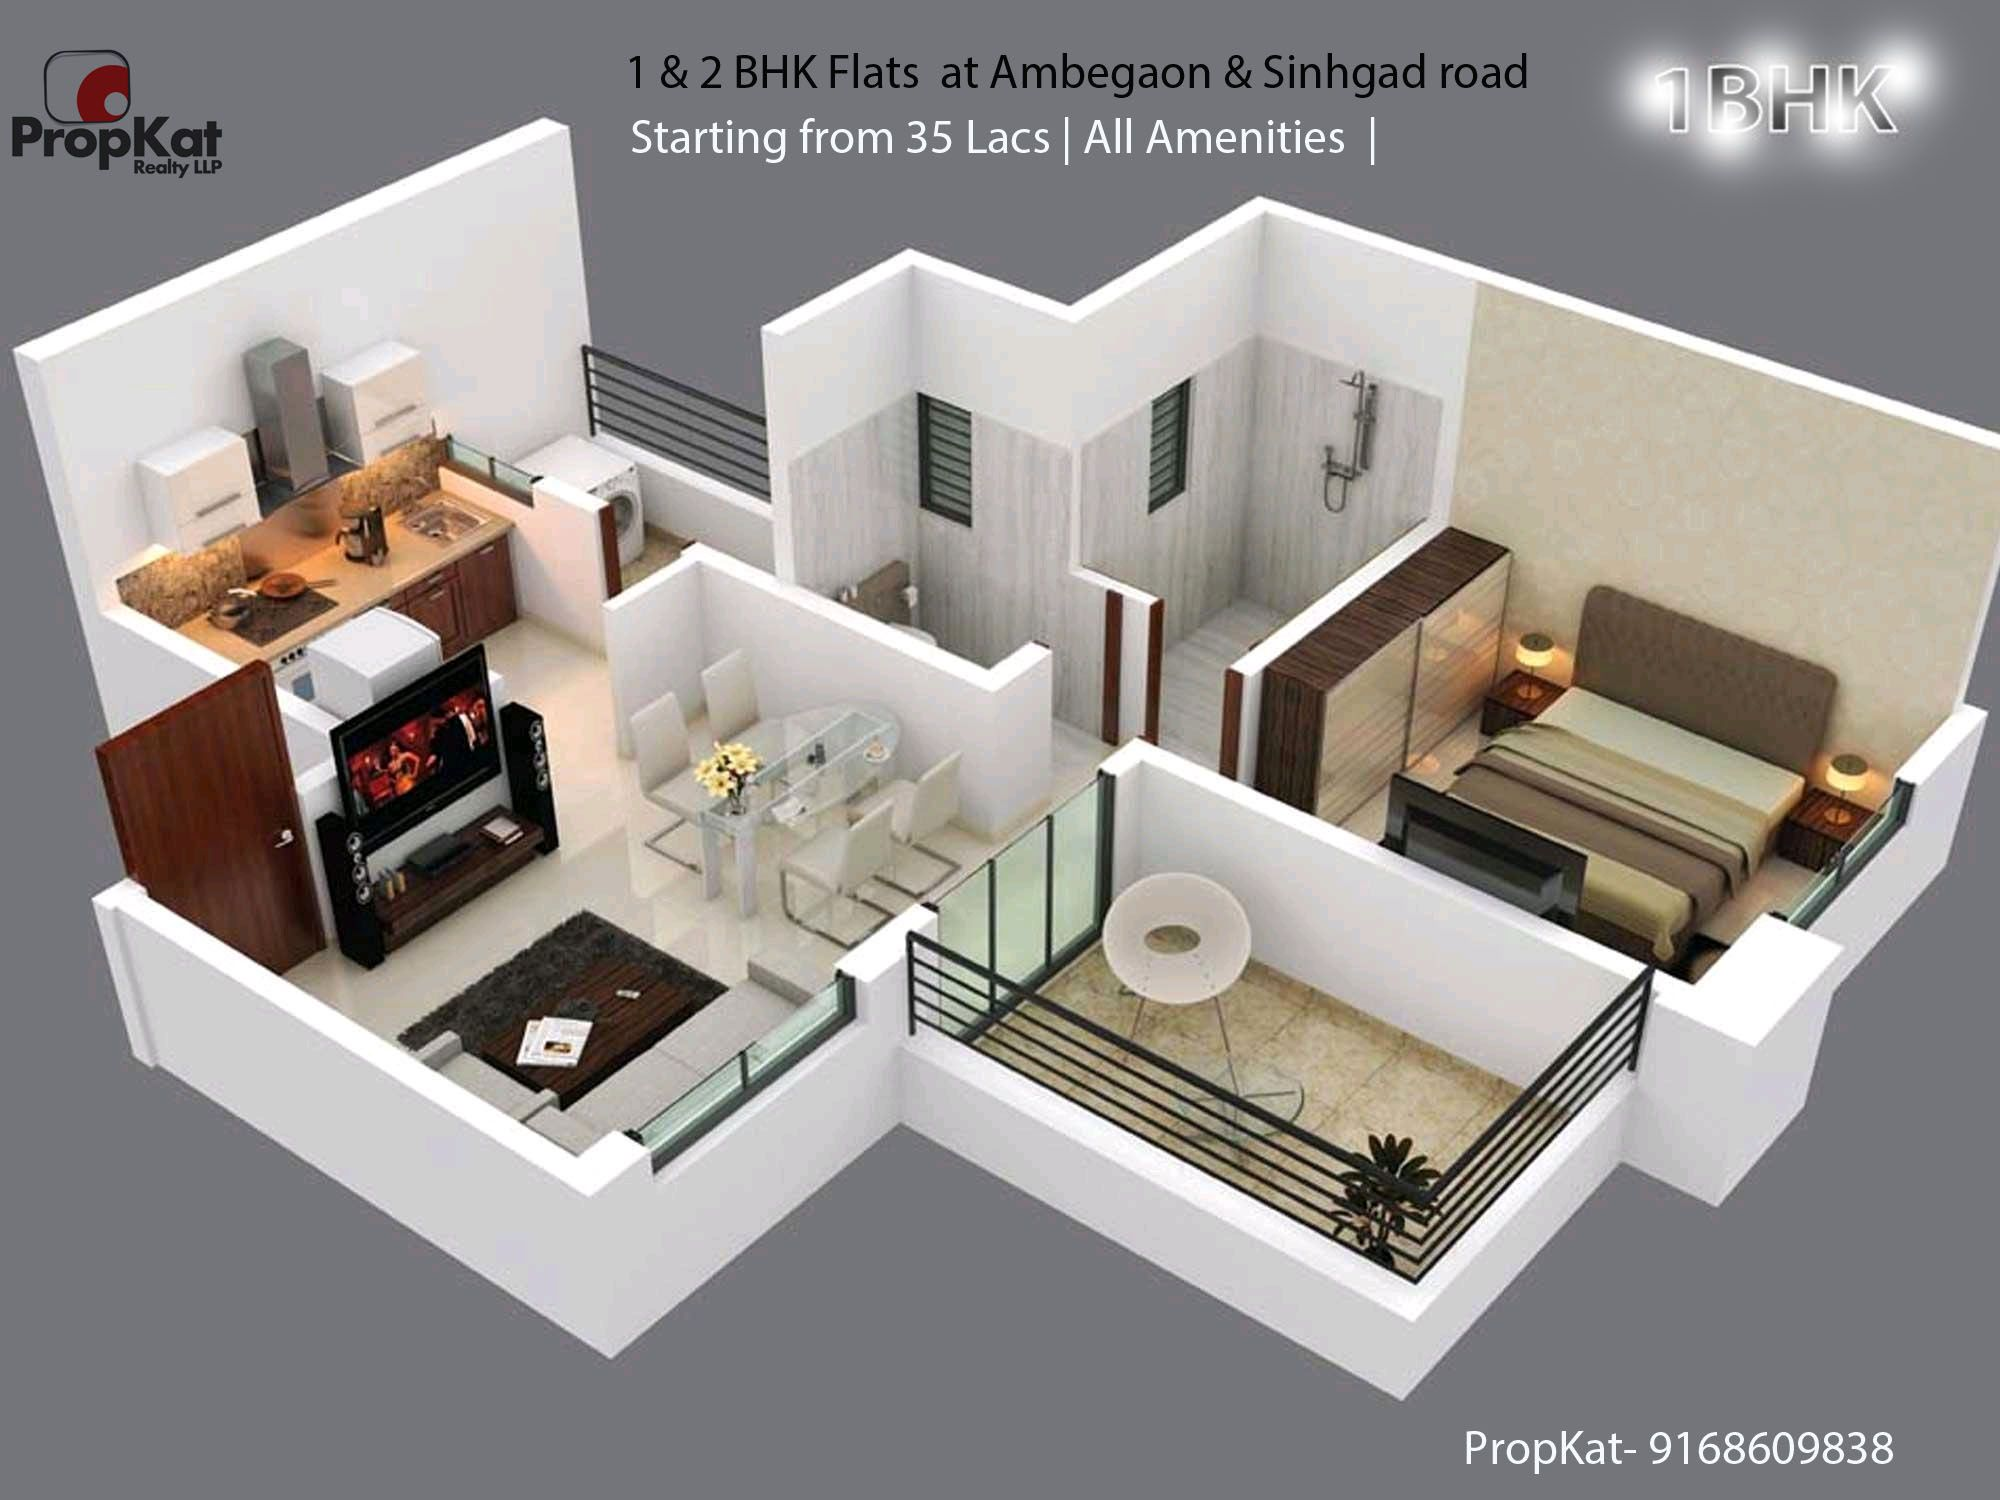 1 2bhk Flats At Ambegaon Sinhgad Road Starting From 35 Lacs All Amenities Propkat 91686098 Flat Interior Design Best Interior Design Flat Interior